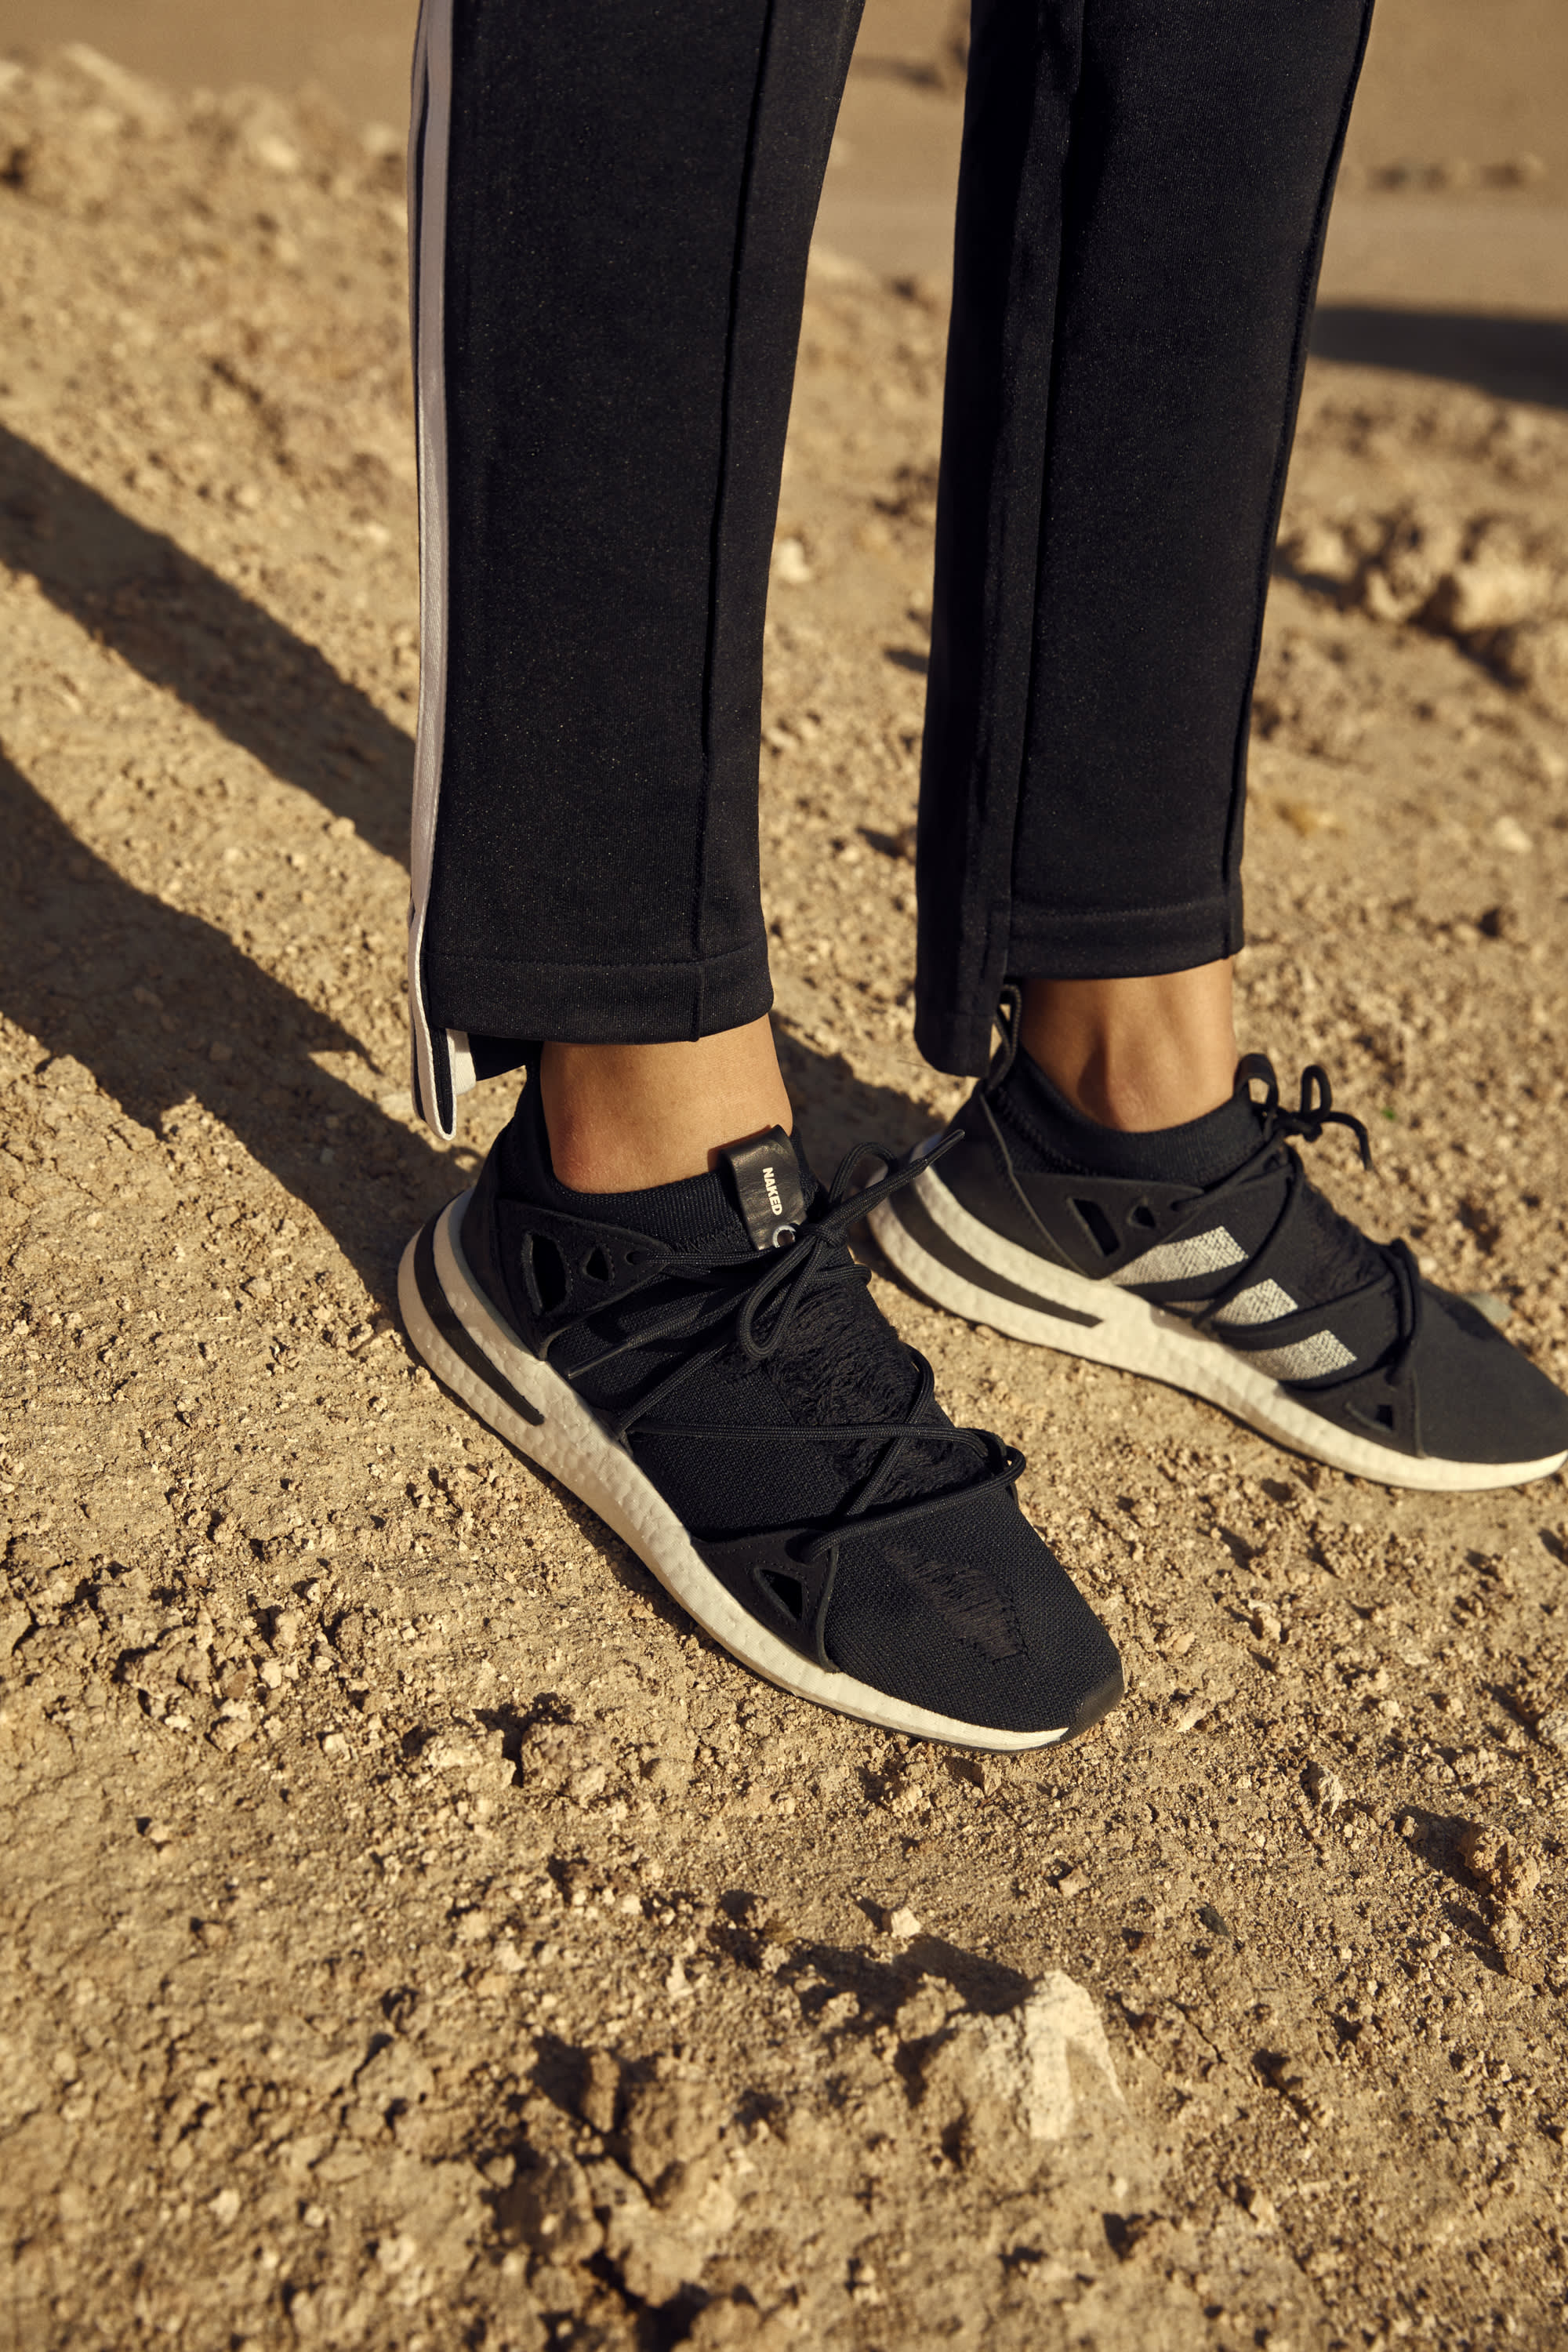 770a2f5e2dd To support the launch of the collection, adidas Originals' newest  female-focused franchise #TLKS, will host an event in Copenhagen on the 8th  March.